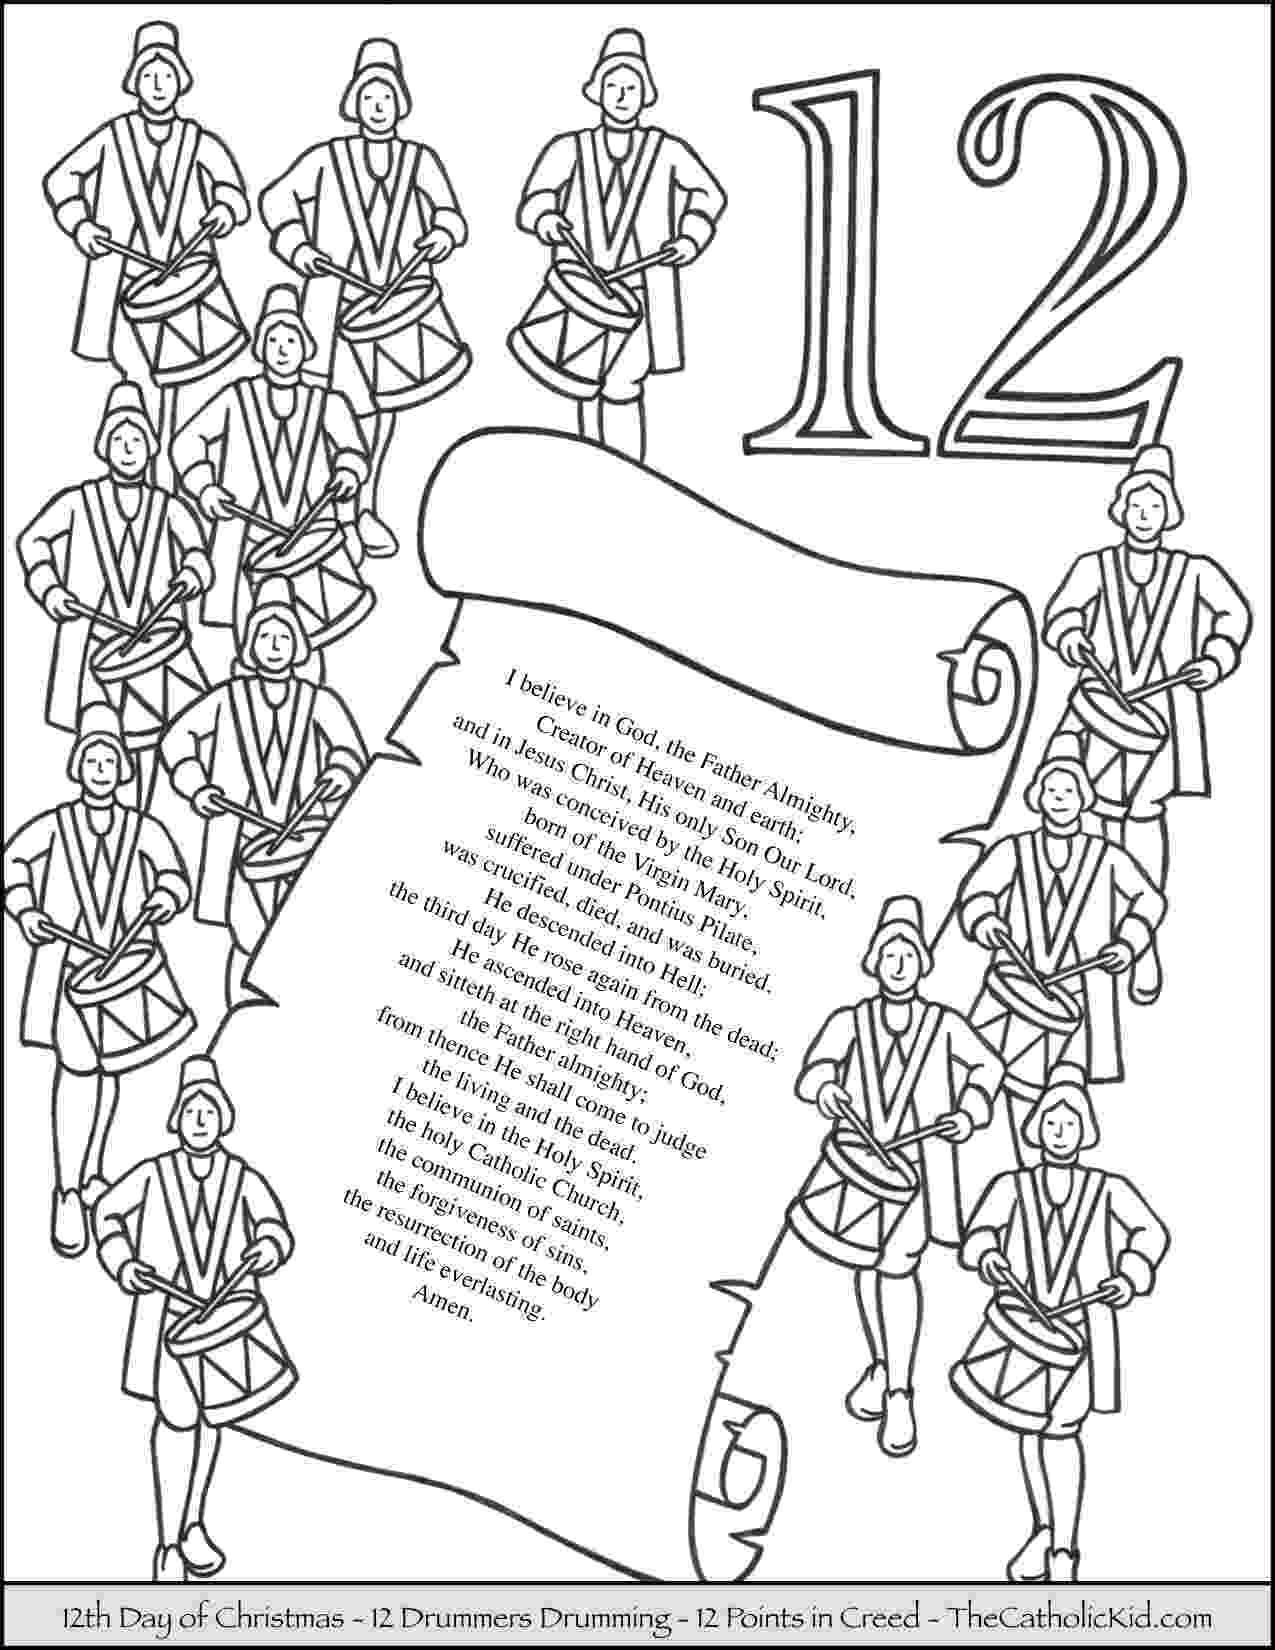 12 days of christmas coloring pages 12 days of christmas coloring pages thecatholickidcom pages coloring days christmas of 12